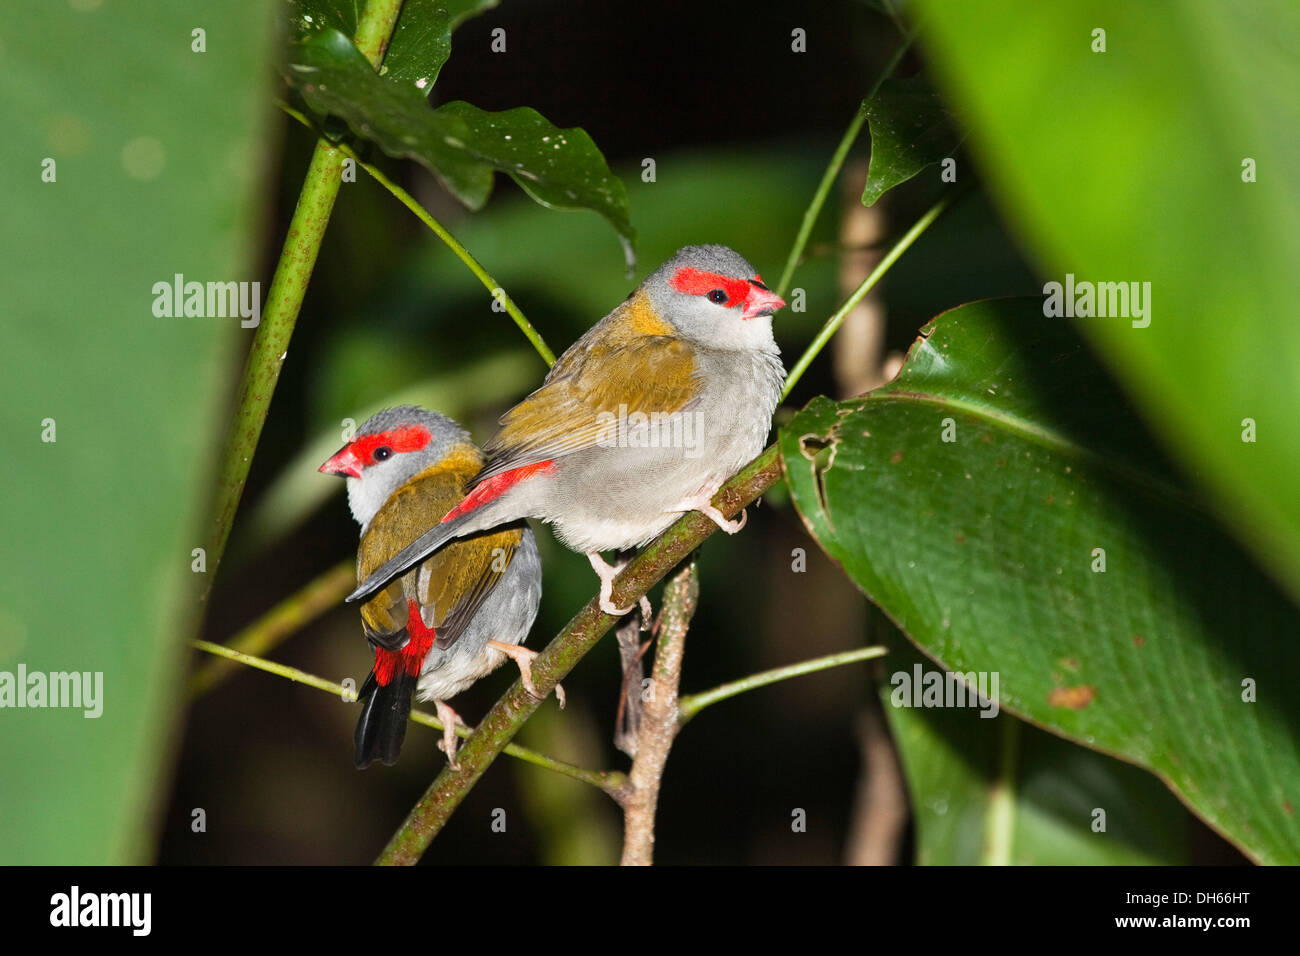 Pair of Red-browed Finches (Neochmia temporalis), Queensland, Australia Stock Photo